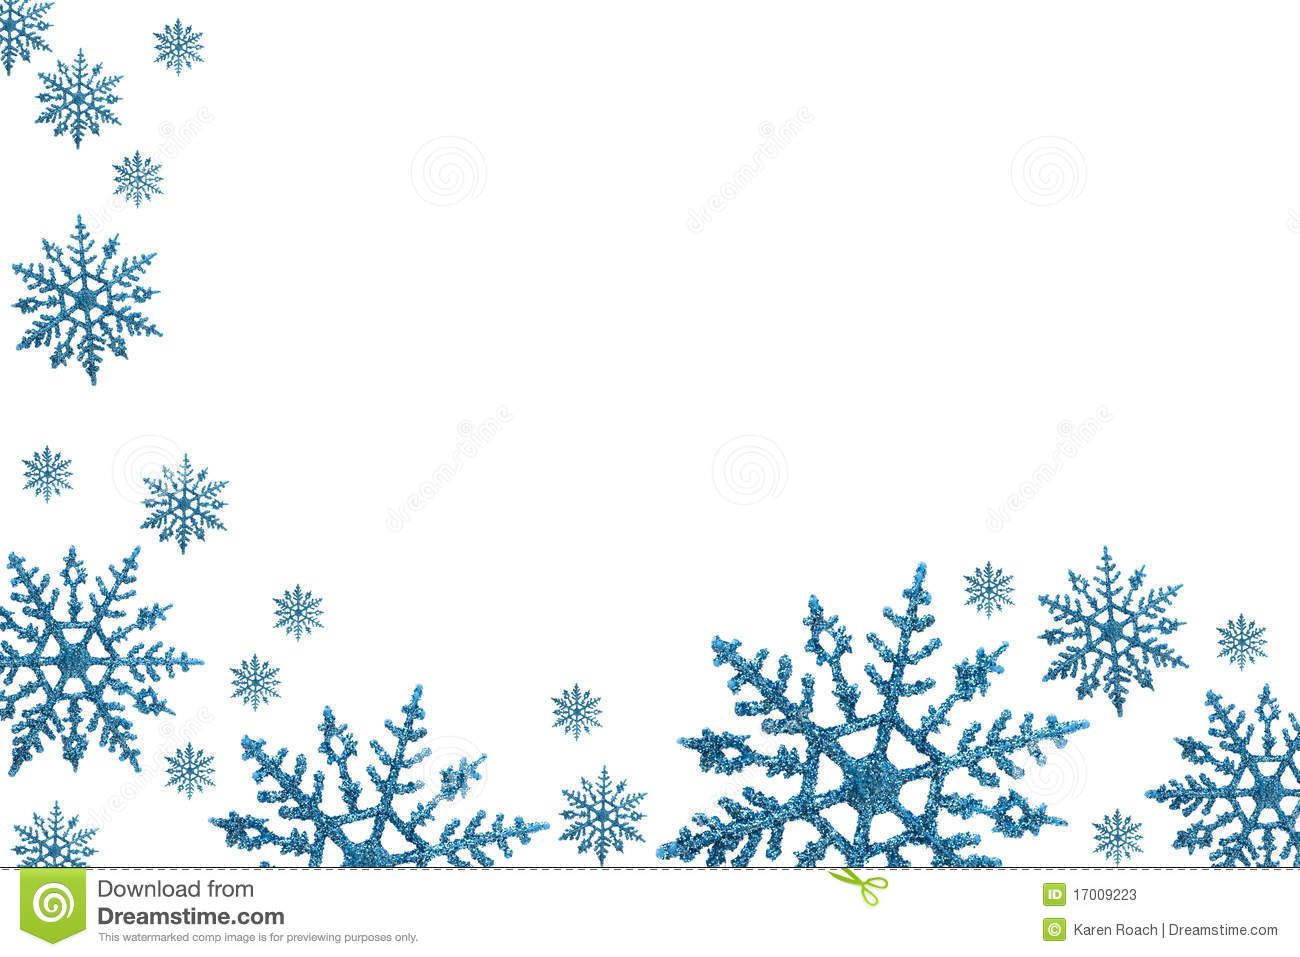 Free clipart winter holidays png transparent stock Winter Border Clipart Winter Border Clipart Winter Border Clipart ... png transparent stock